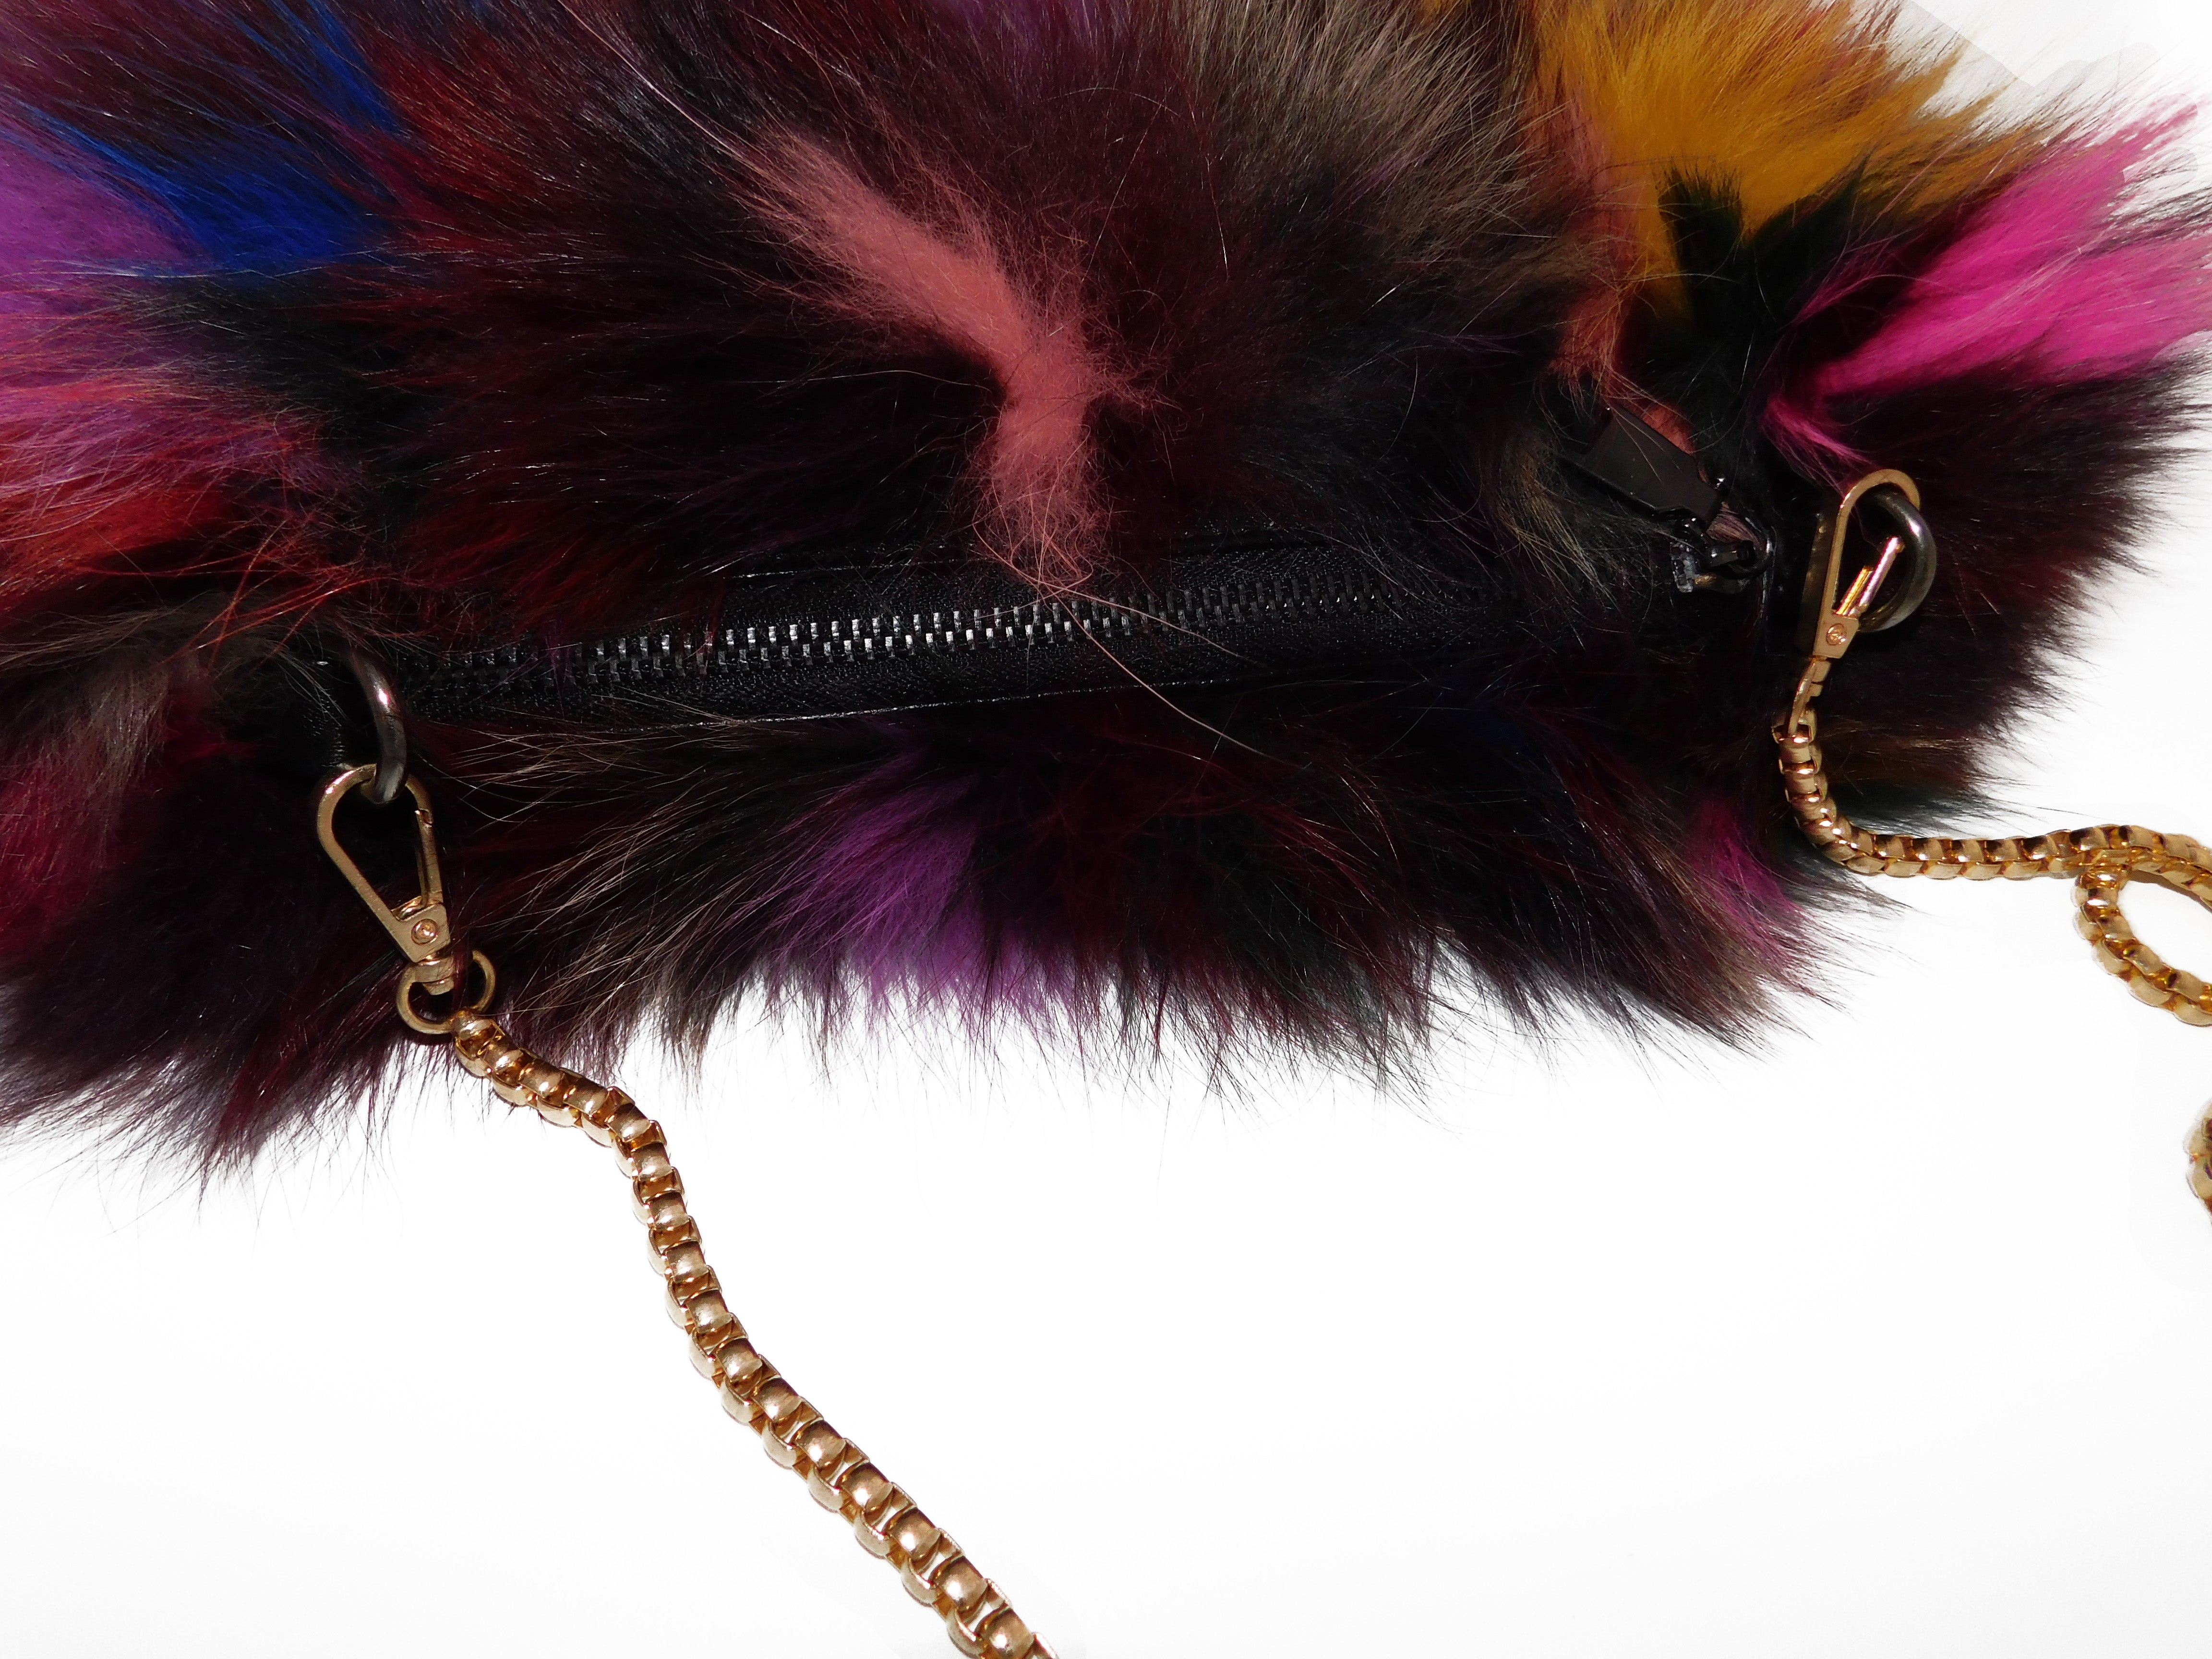 Multicolor Fox Fur Muff Handbag with Gold Chain - paulamariecollection